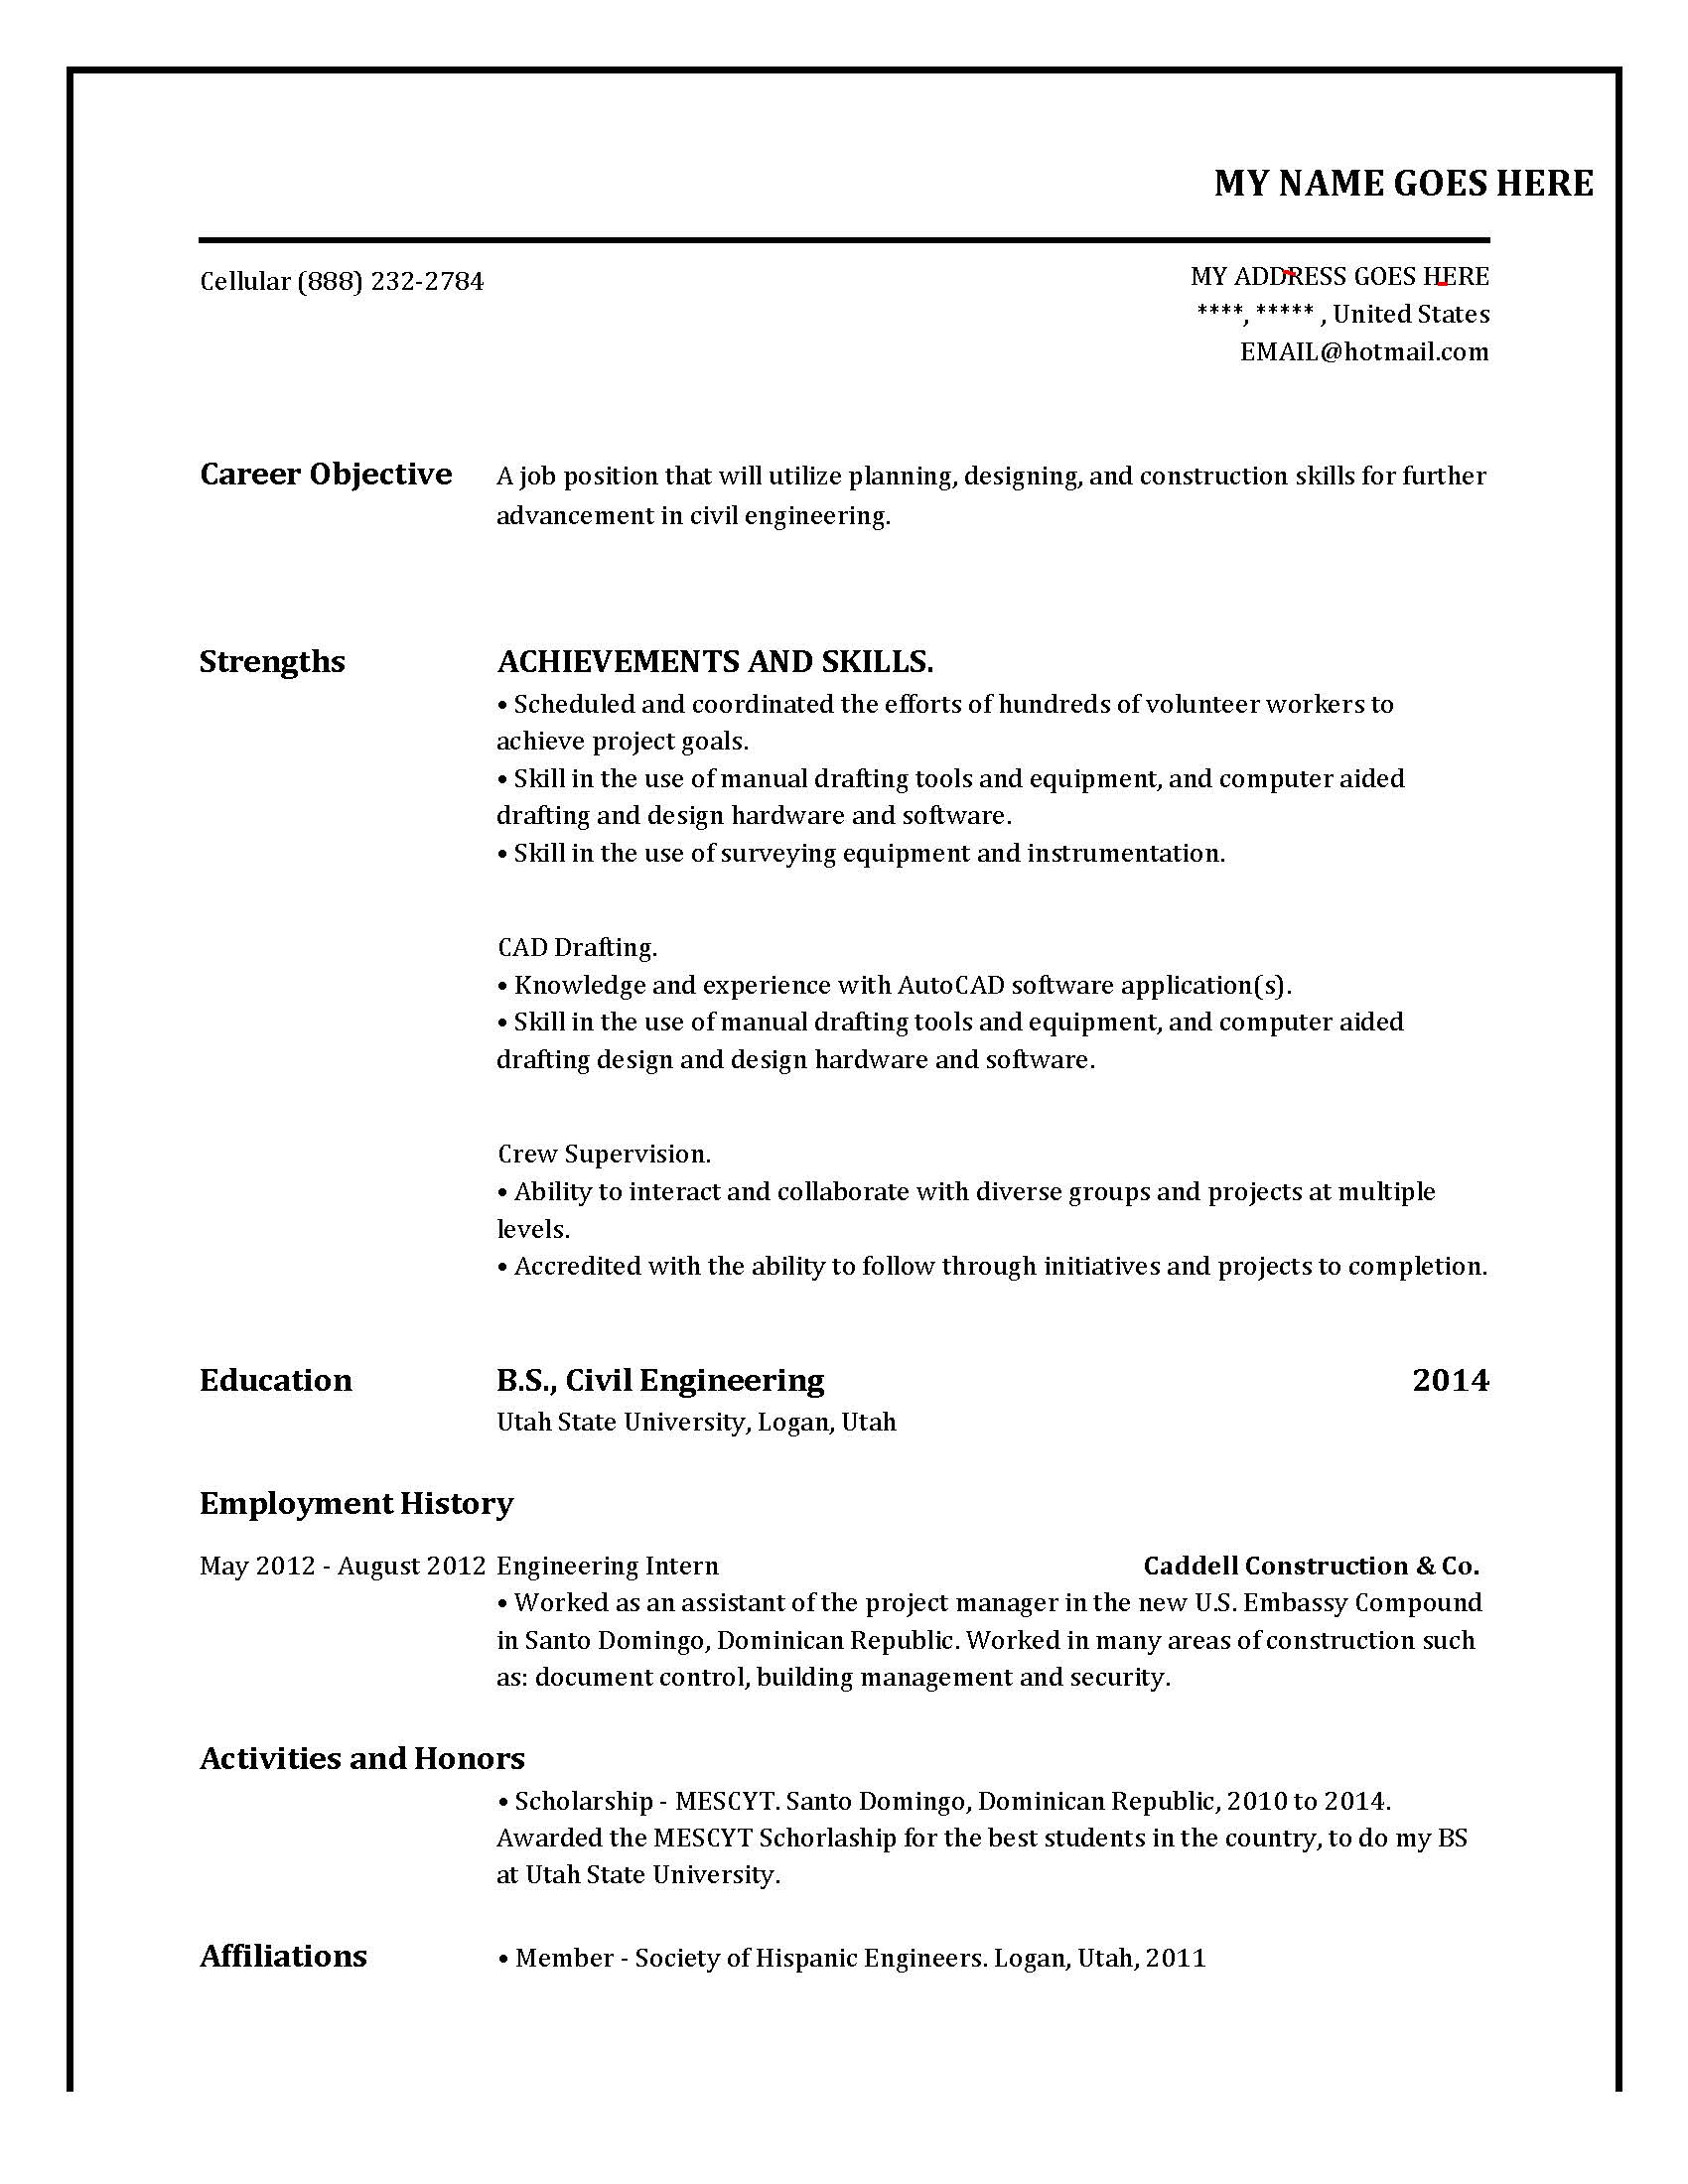 Exceptional Fieldstation.co Idea How To Make My First Resume